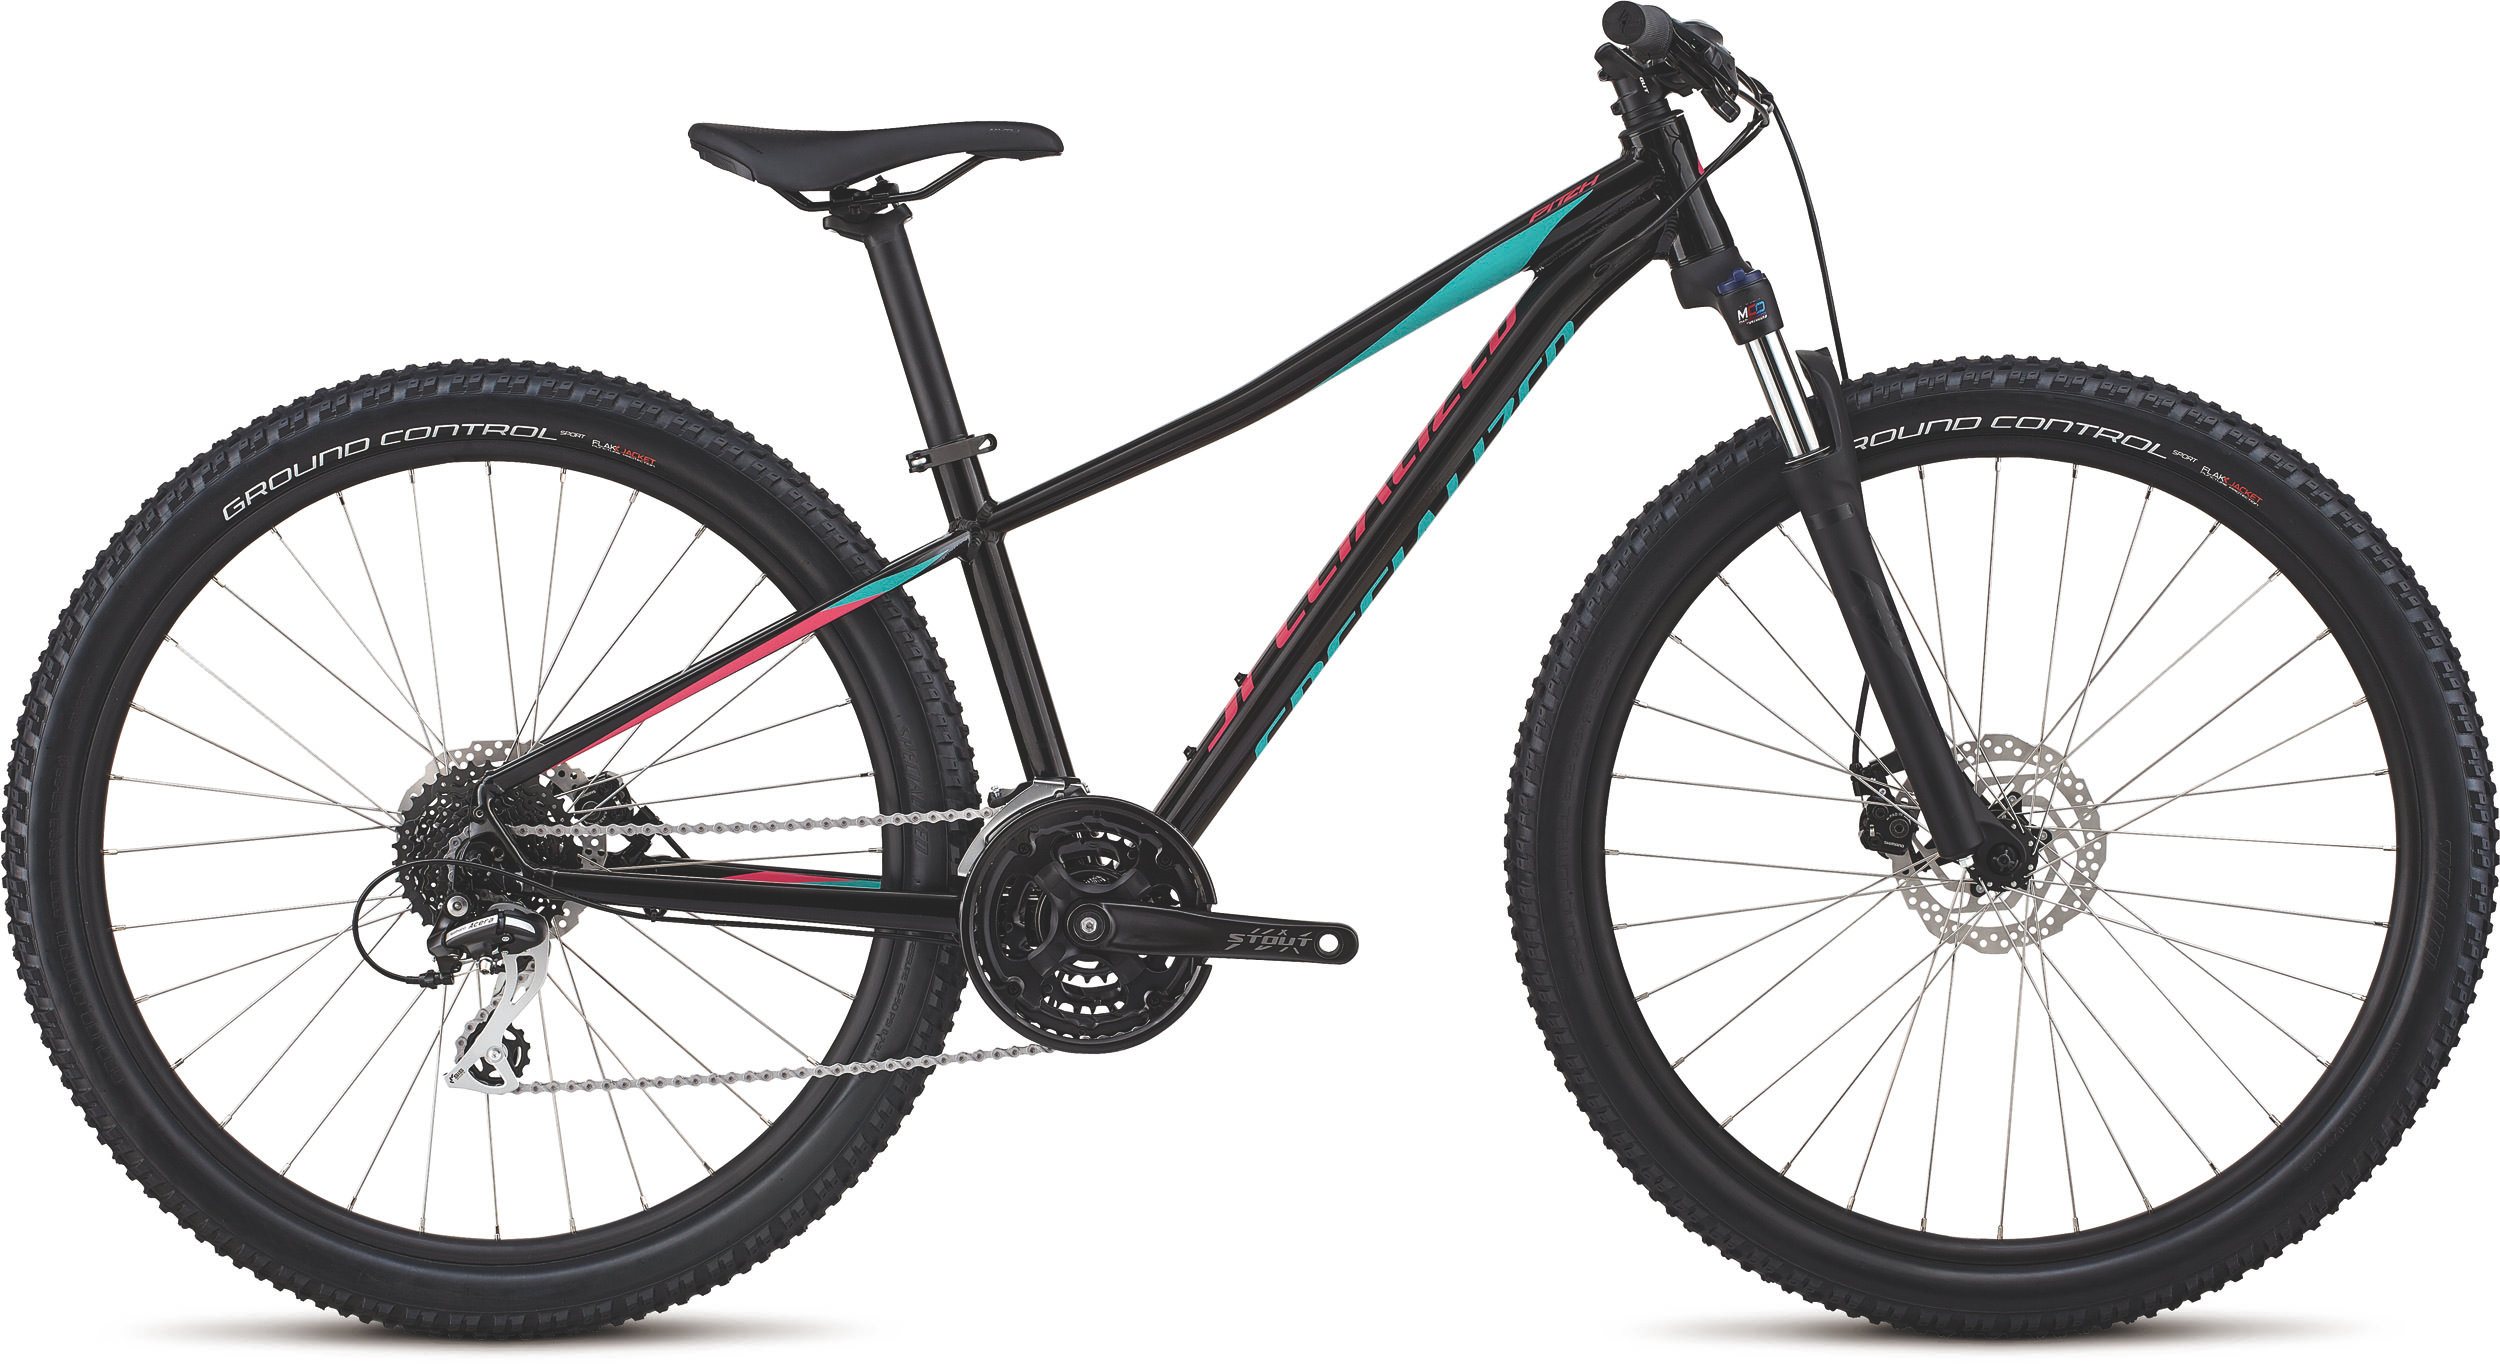 Specialized Women´s Pitch Sport 27.5 Gloss Tarmac Black/Acid Mint/Acid Pink/Reflec XS - Bike Maniac